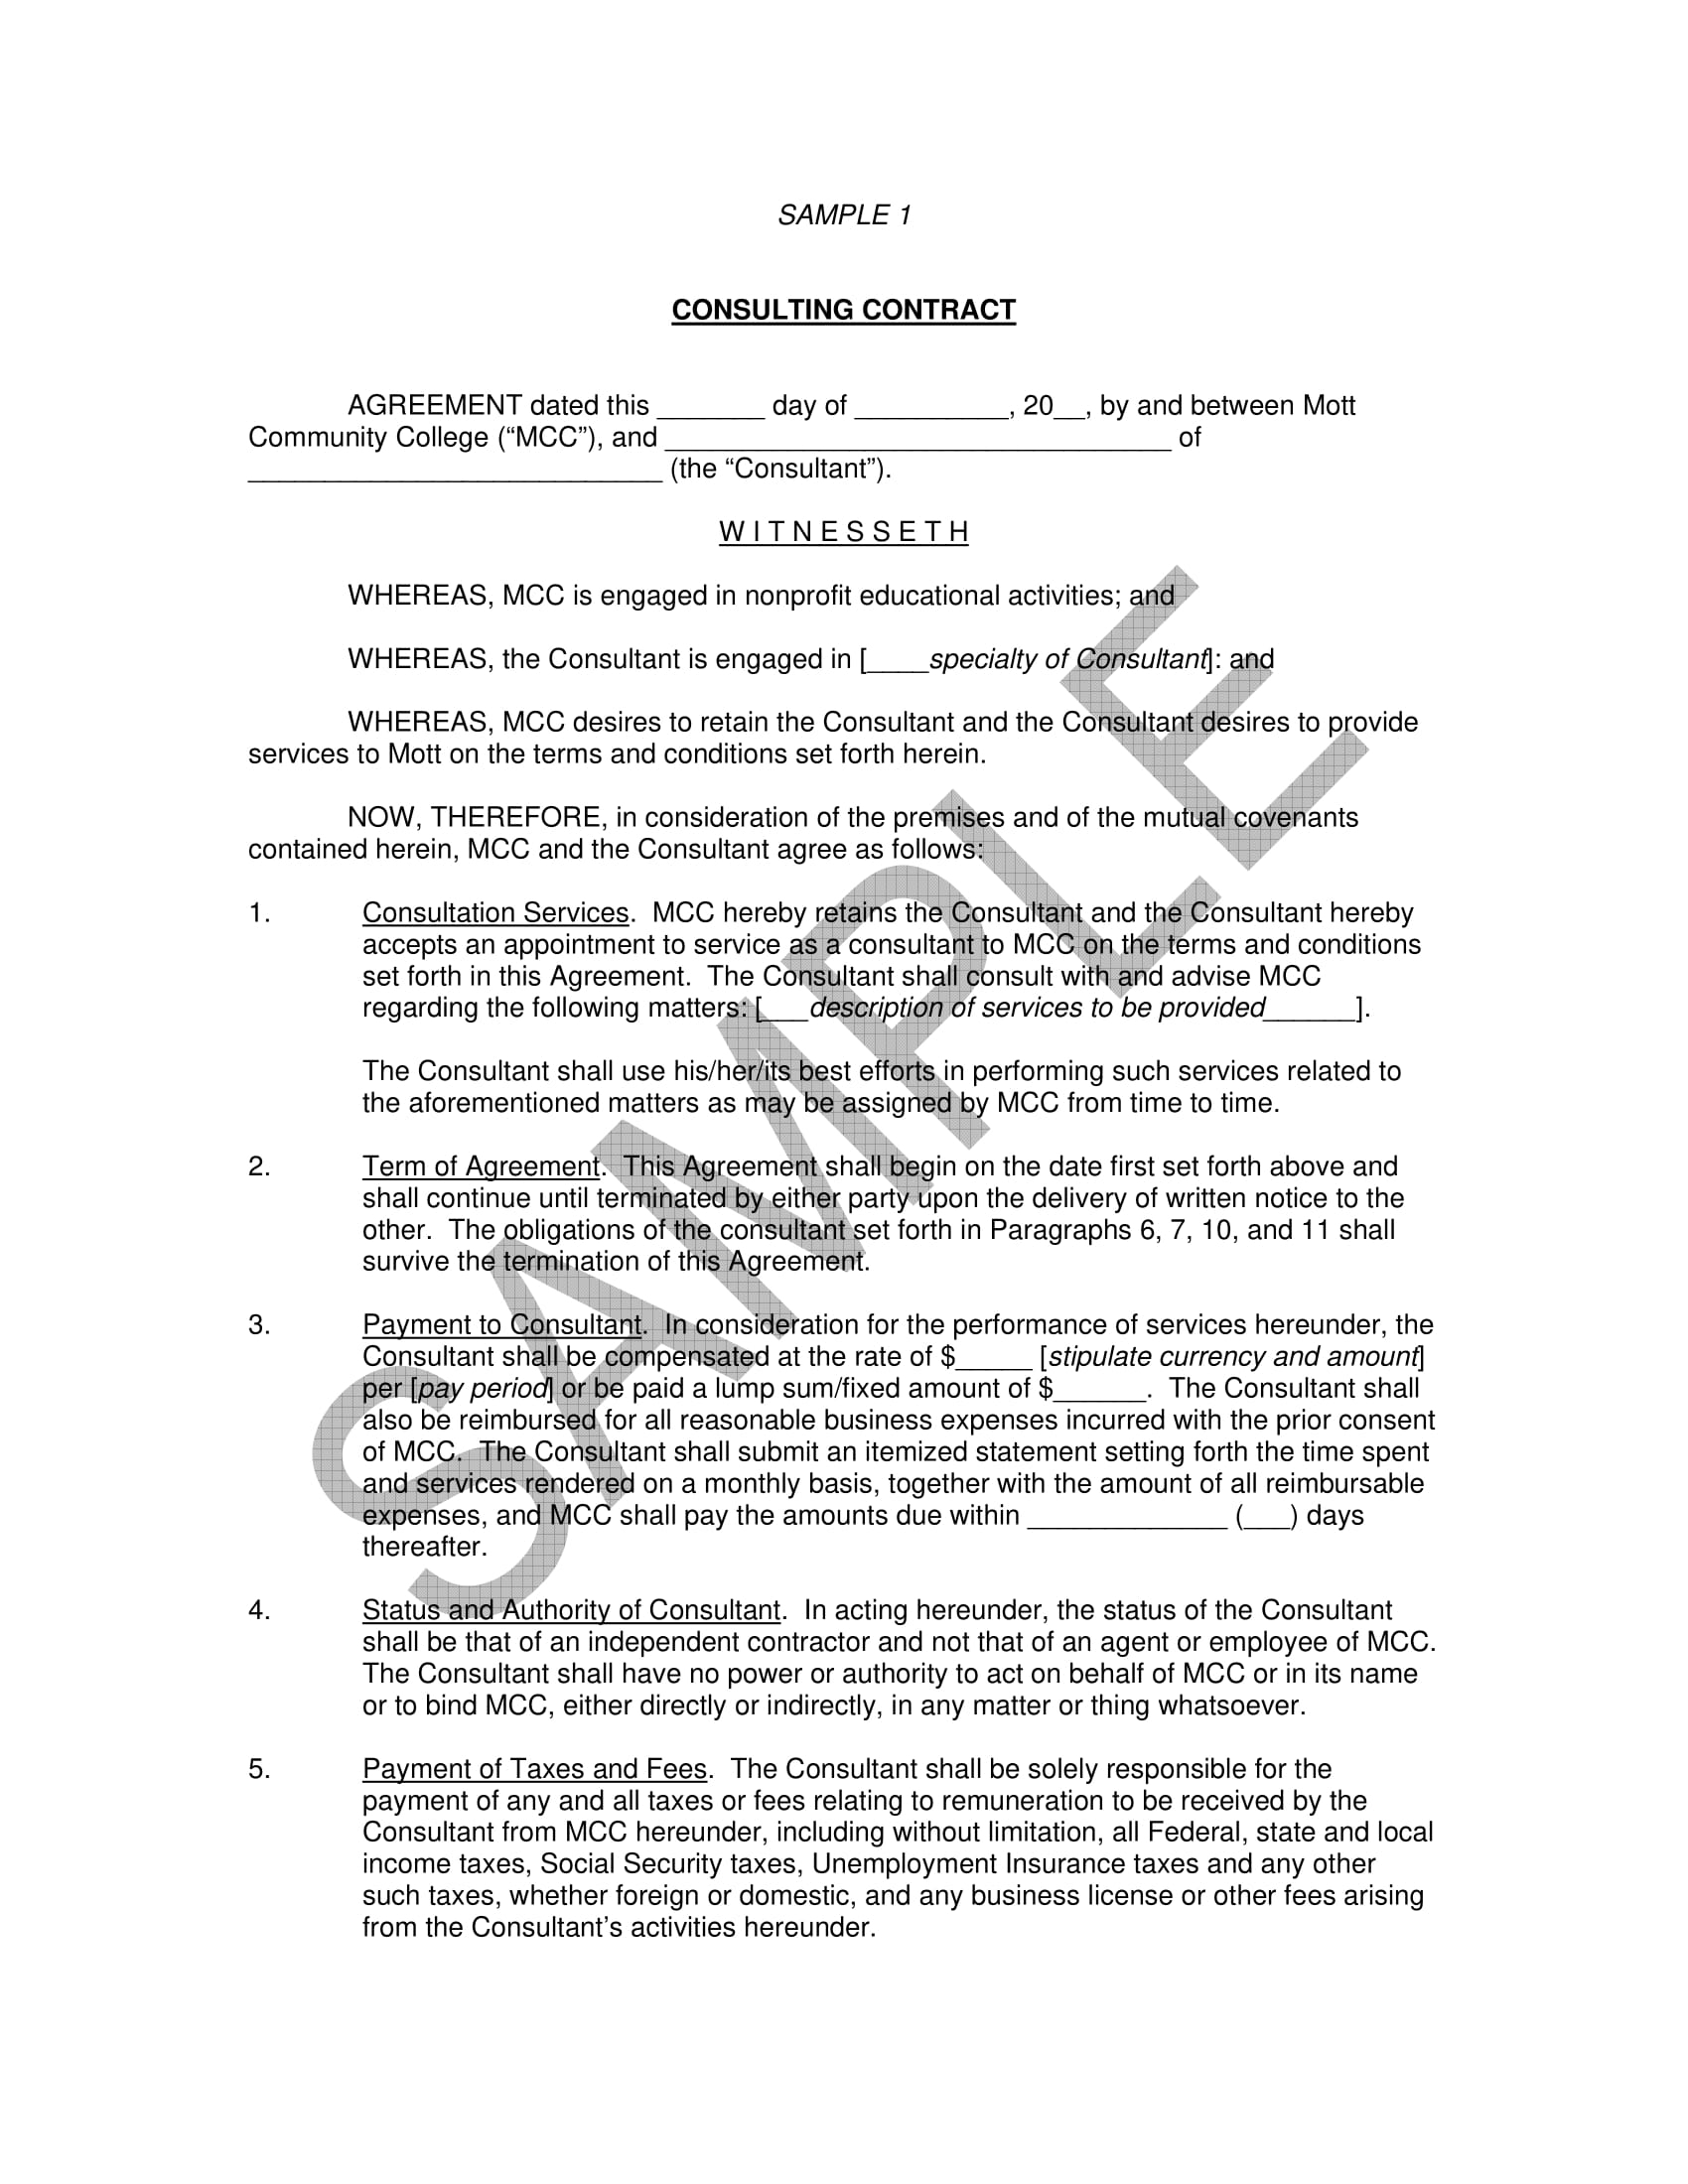 independent contractor consulting contract form 01